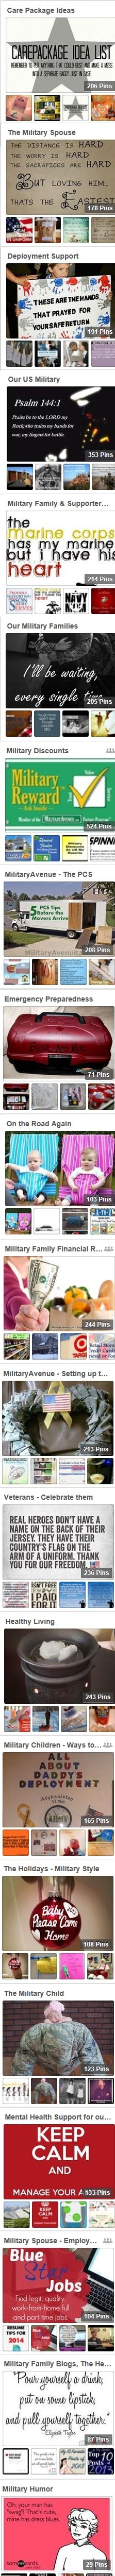 Great Resource for Military Deployment, Support, Empowerment, Education, PCS and so much more!  Come follow along the military journey: http://www.pinterest.com/militaryavenue